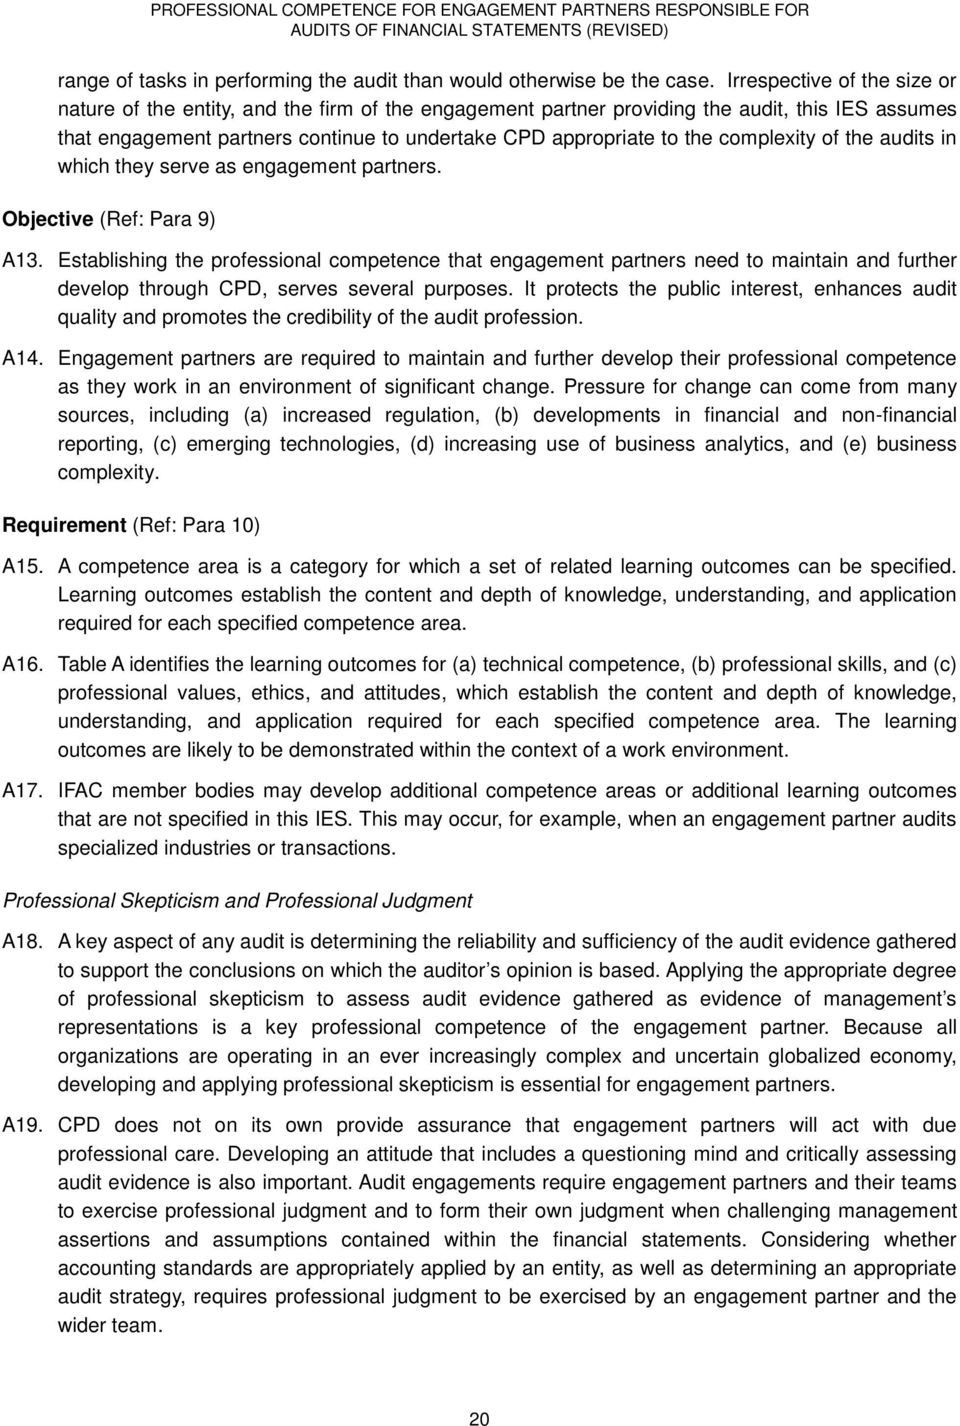 complexity of the audits in which they serve as engagement partners. Objective (Ref: Para 9) A13.